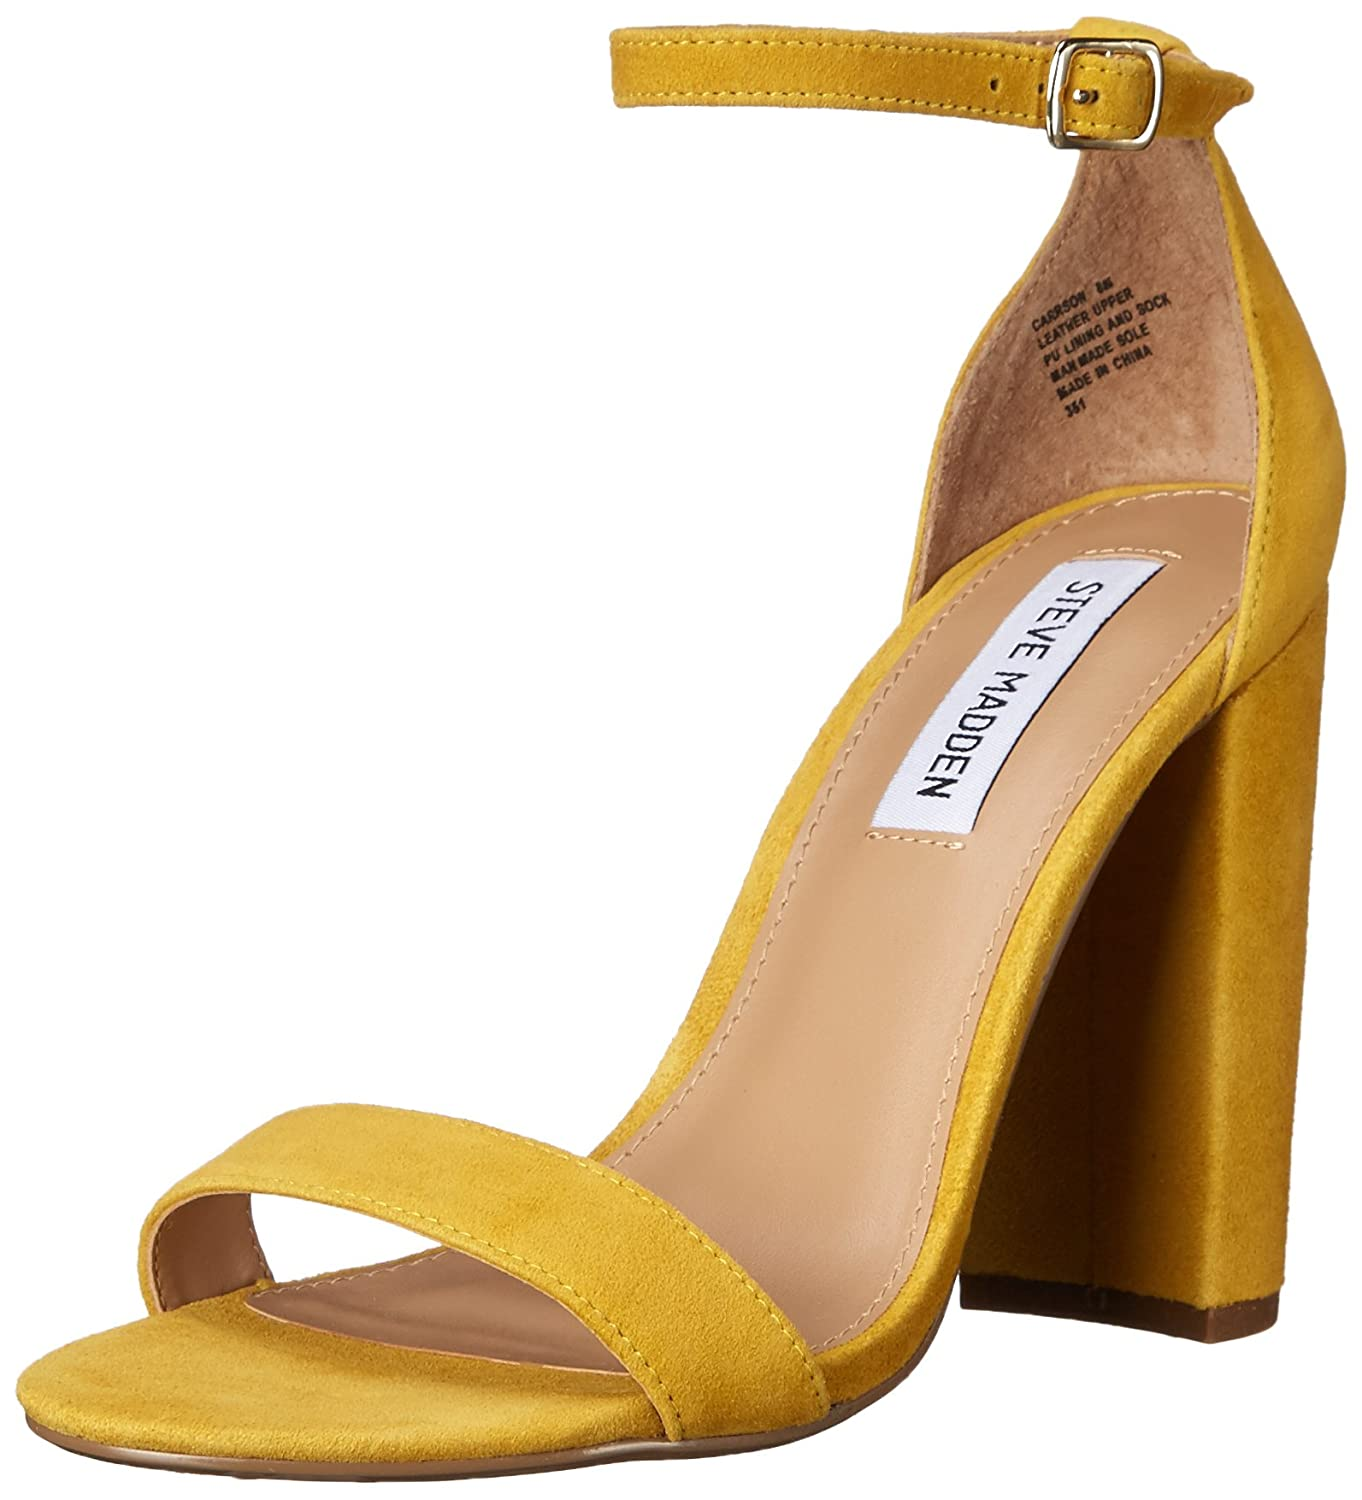 Steve Madden Women's Carrson Dress Sandal B0148IVM2E 5.5 B(M) US|Yellow Suede